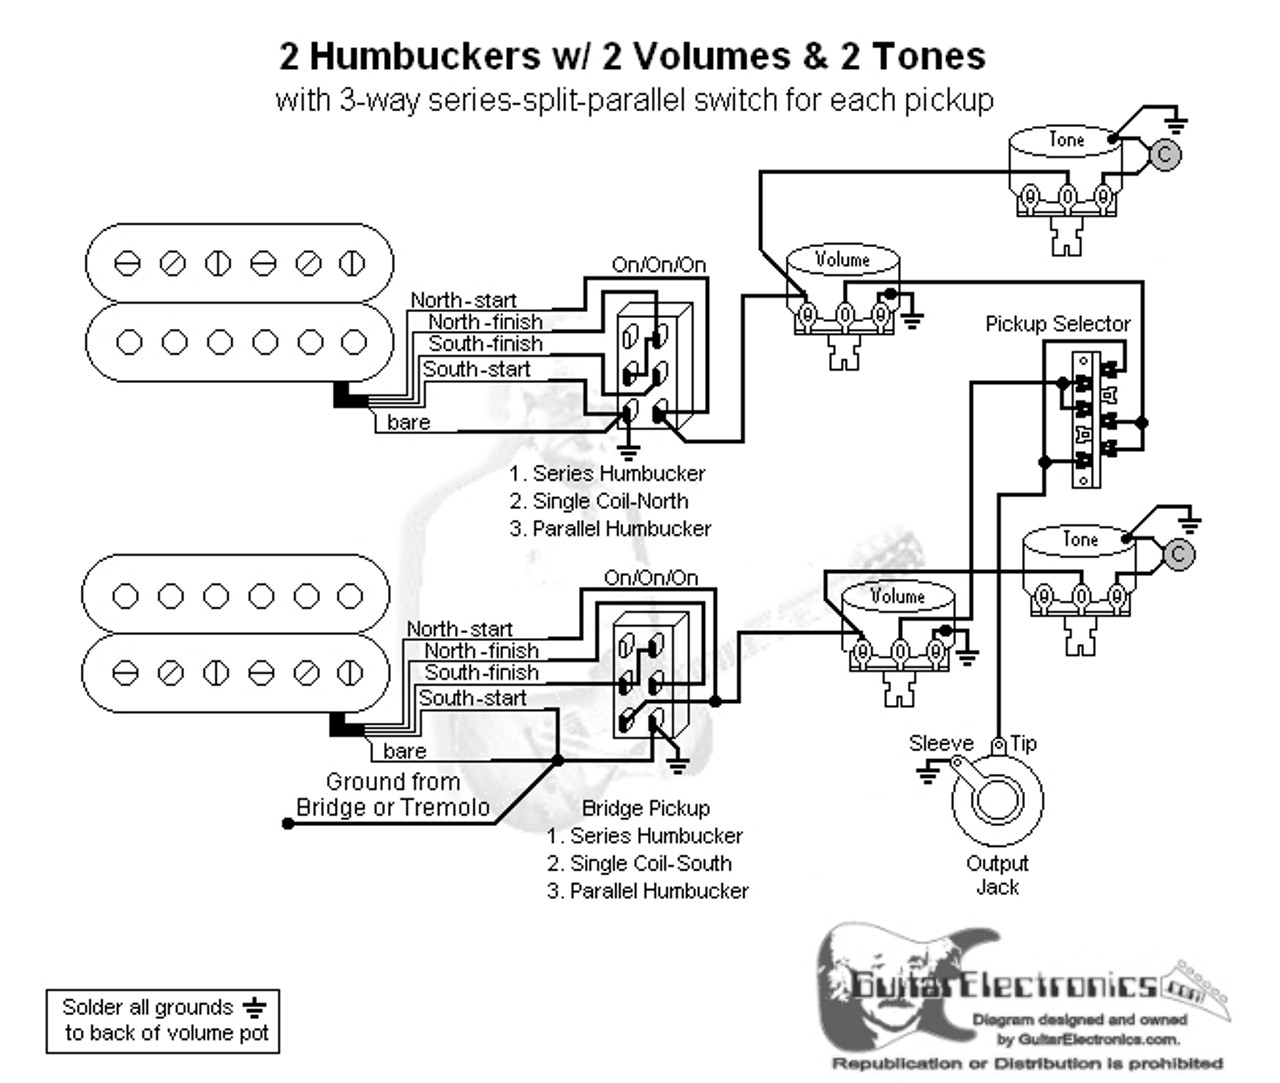 Les Paul Pickup Wiring Diagram Two Volume 3 Wiring Diagram Pale Warehouse B Pale Warehouse B Pmov2019 It